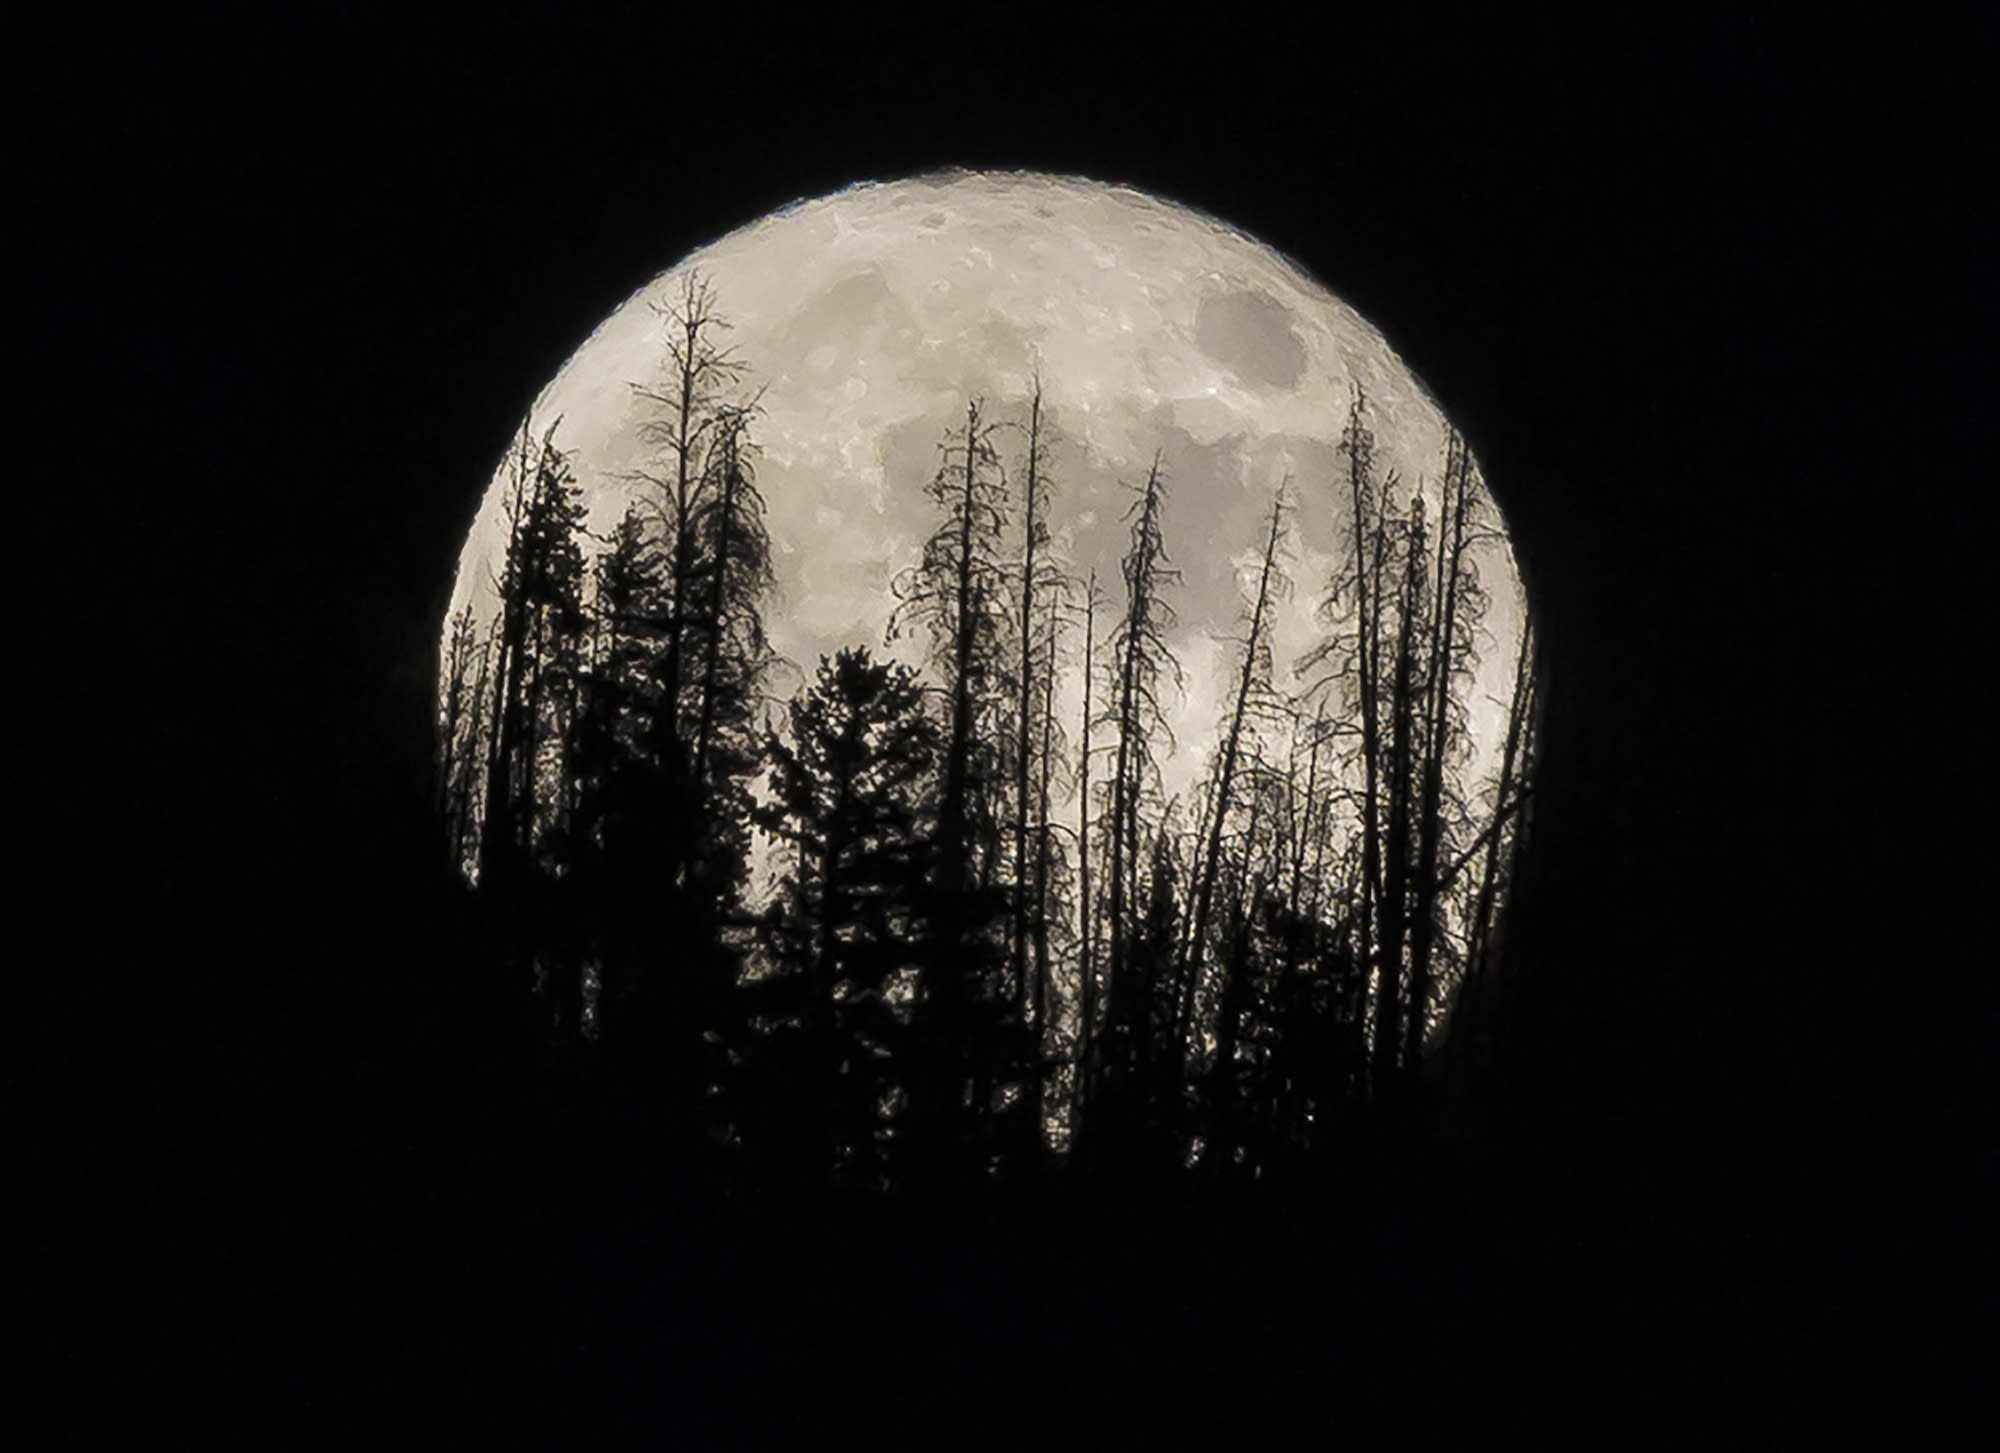 <p>Evergreen trees are silhouetted on the mountain top as a supermoon rises over over the Dark Sky Community of Summit Sky Ranch in Silverthorne, Colo., Monday, Nov. 14, 2016. (AP Photo/Jack Dempsey) </p>